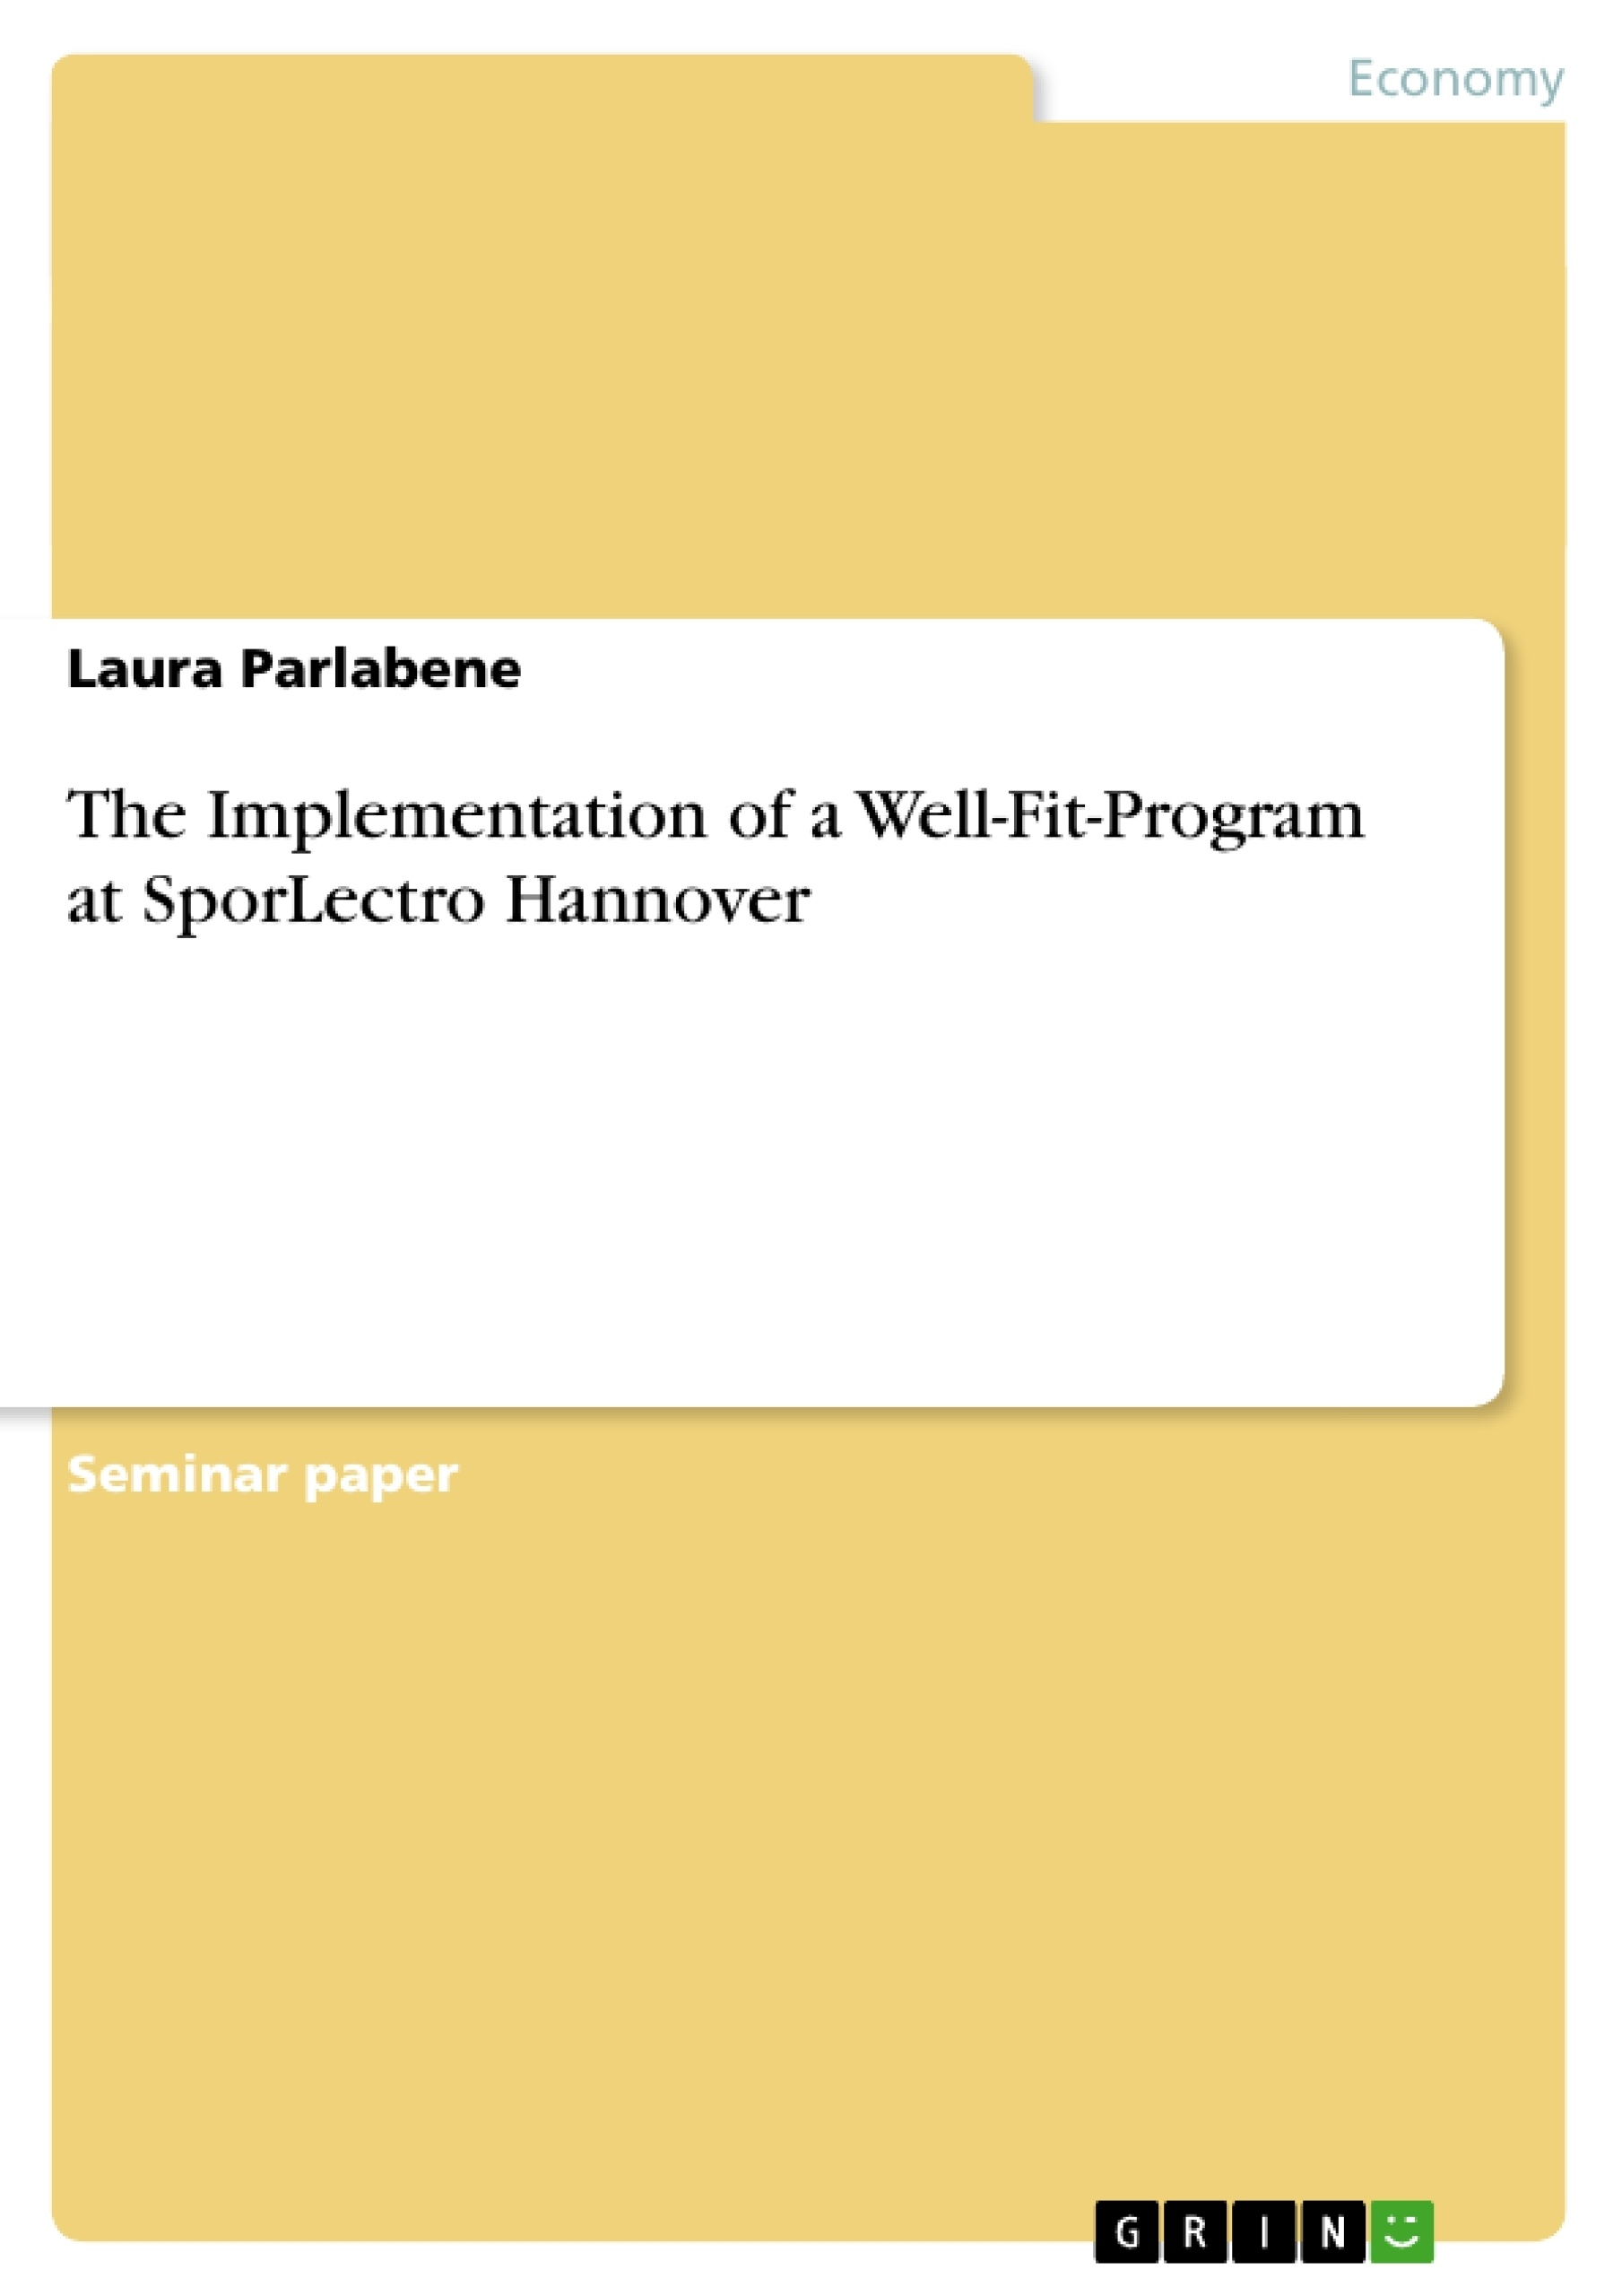 Title: The Implementation of a Well-Fit-Program at SporLectro Hannover